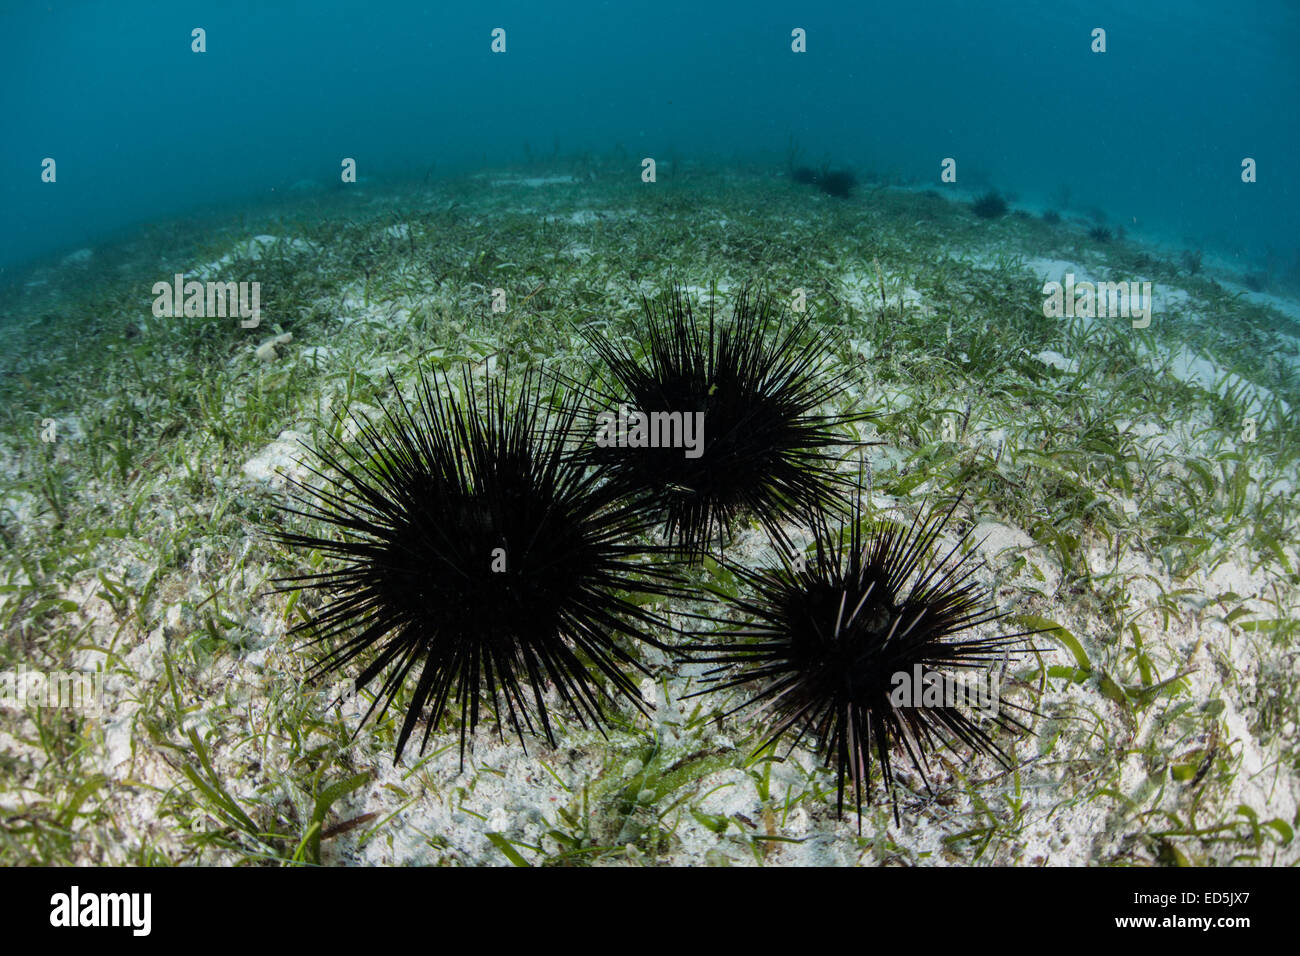 Black urchins (Diadema sp.) gather on a shallow seagrass meadow near the tropical island of Alor in Indonesia. - Stock Image